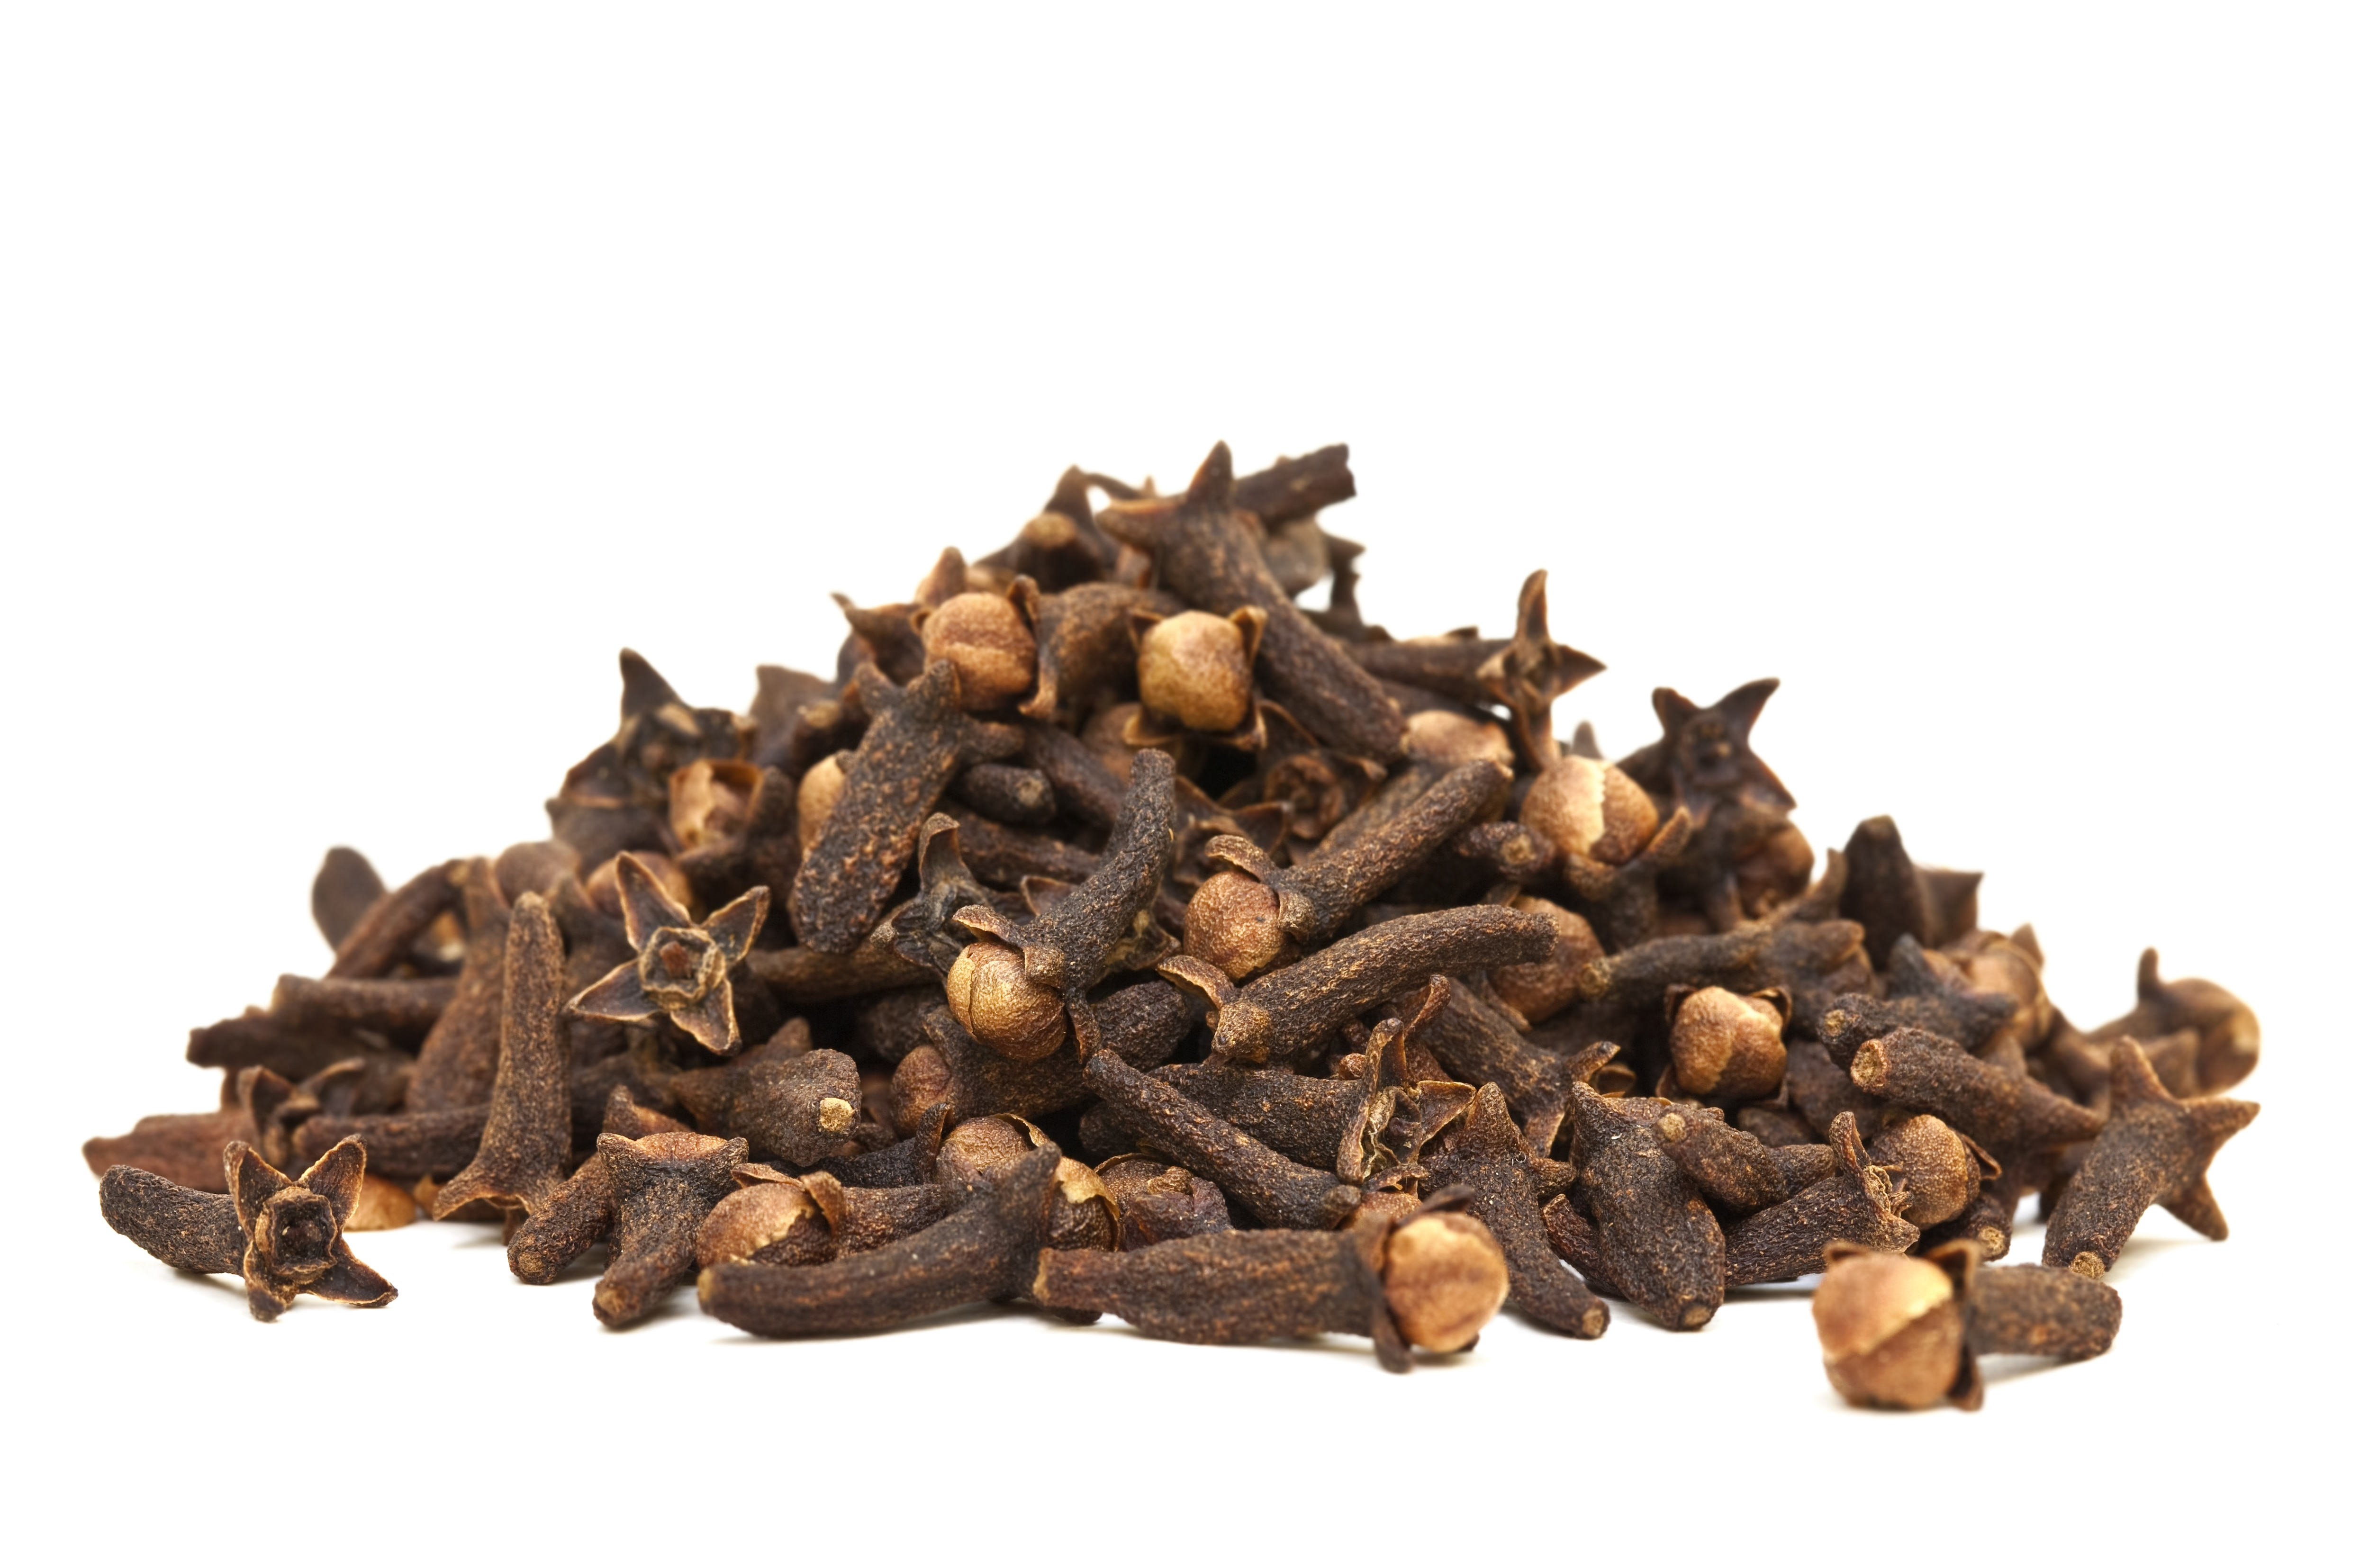 DESCRIPTION: Clove is originated from Indonesia & Malacca islands. It is with red brown color; Cloves are taken from tree & dried. It is widely distributed in Greeks, Roman & China. Clove is an evergreen tree that can grow up to 8-12 m tall, Clove require warm & humid climate.  It requires deep loam soil oil for growth.   Botanical Name: Syzygium aromaticum.   PROPERTIES: It is Colorless to Pale yellow with Strong spicy smell, Watery in viscosity   EXTRACTION: Clove oil can be extracted from the leaves, stem and bud by water distillation, containing the desired lower percentage of Eugenol.   CONSTITUENTS: The chemical constituents of clove oil are iron, calcium, potassium, phosphorous, vitamin A & C, hydrolic acid.   BLENDING: Clove oil blends with benzoin, lavender, ginger, sandalwood, basil and clary sage.   USES: Clove oil is used for cuts, burns, bruise & acne. It is used in Arthritic pain, rheumatism. Dentist give advice for the use of clove oil as it helps in toothache & mouth sore. It is good for digestive system as it is very effective against vomiting & diarrhea. Clove oil is used to treat against flatulence, bronchitis, asthma & tuberculosis. Clove oil can be used to reduce anxiety, mental exhaustion, fatigue & tension. Clove oil can be used as massage oil in cream and lotion. It is very effective against leg ulcer and skin sore. Clove oil acts as anti aging agent as it helps to remove wrinkles and facial rejuvenation. Due to its soothing effect and powerful aroma clove oil is used in making soap. Due to its powerful aroma and health benefits clove oil is used in food and flavoring. Clove oil added to split pea, bean soups and chili to give a good flavor